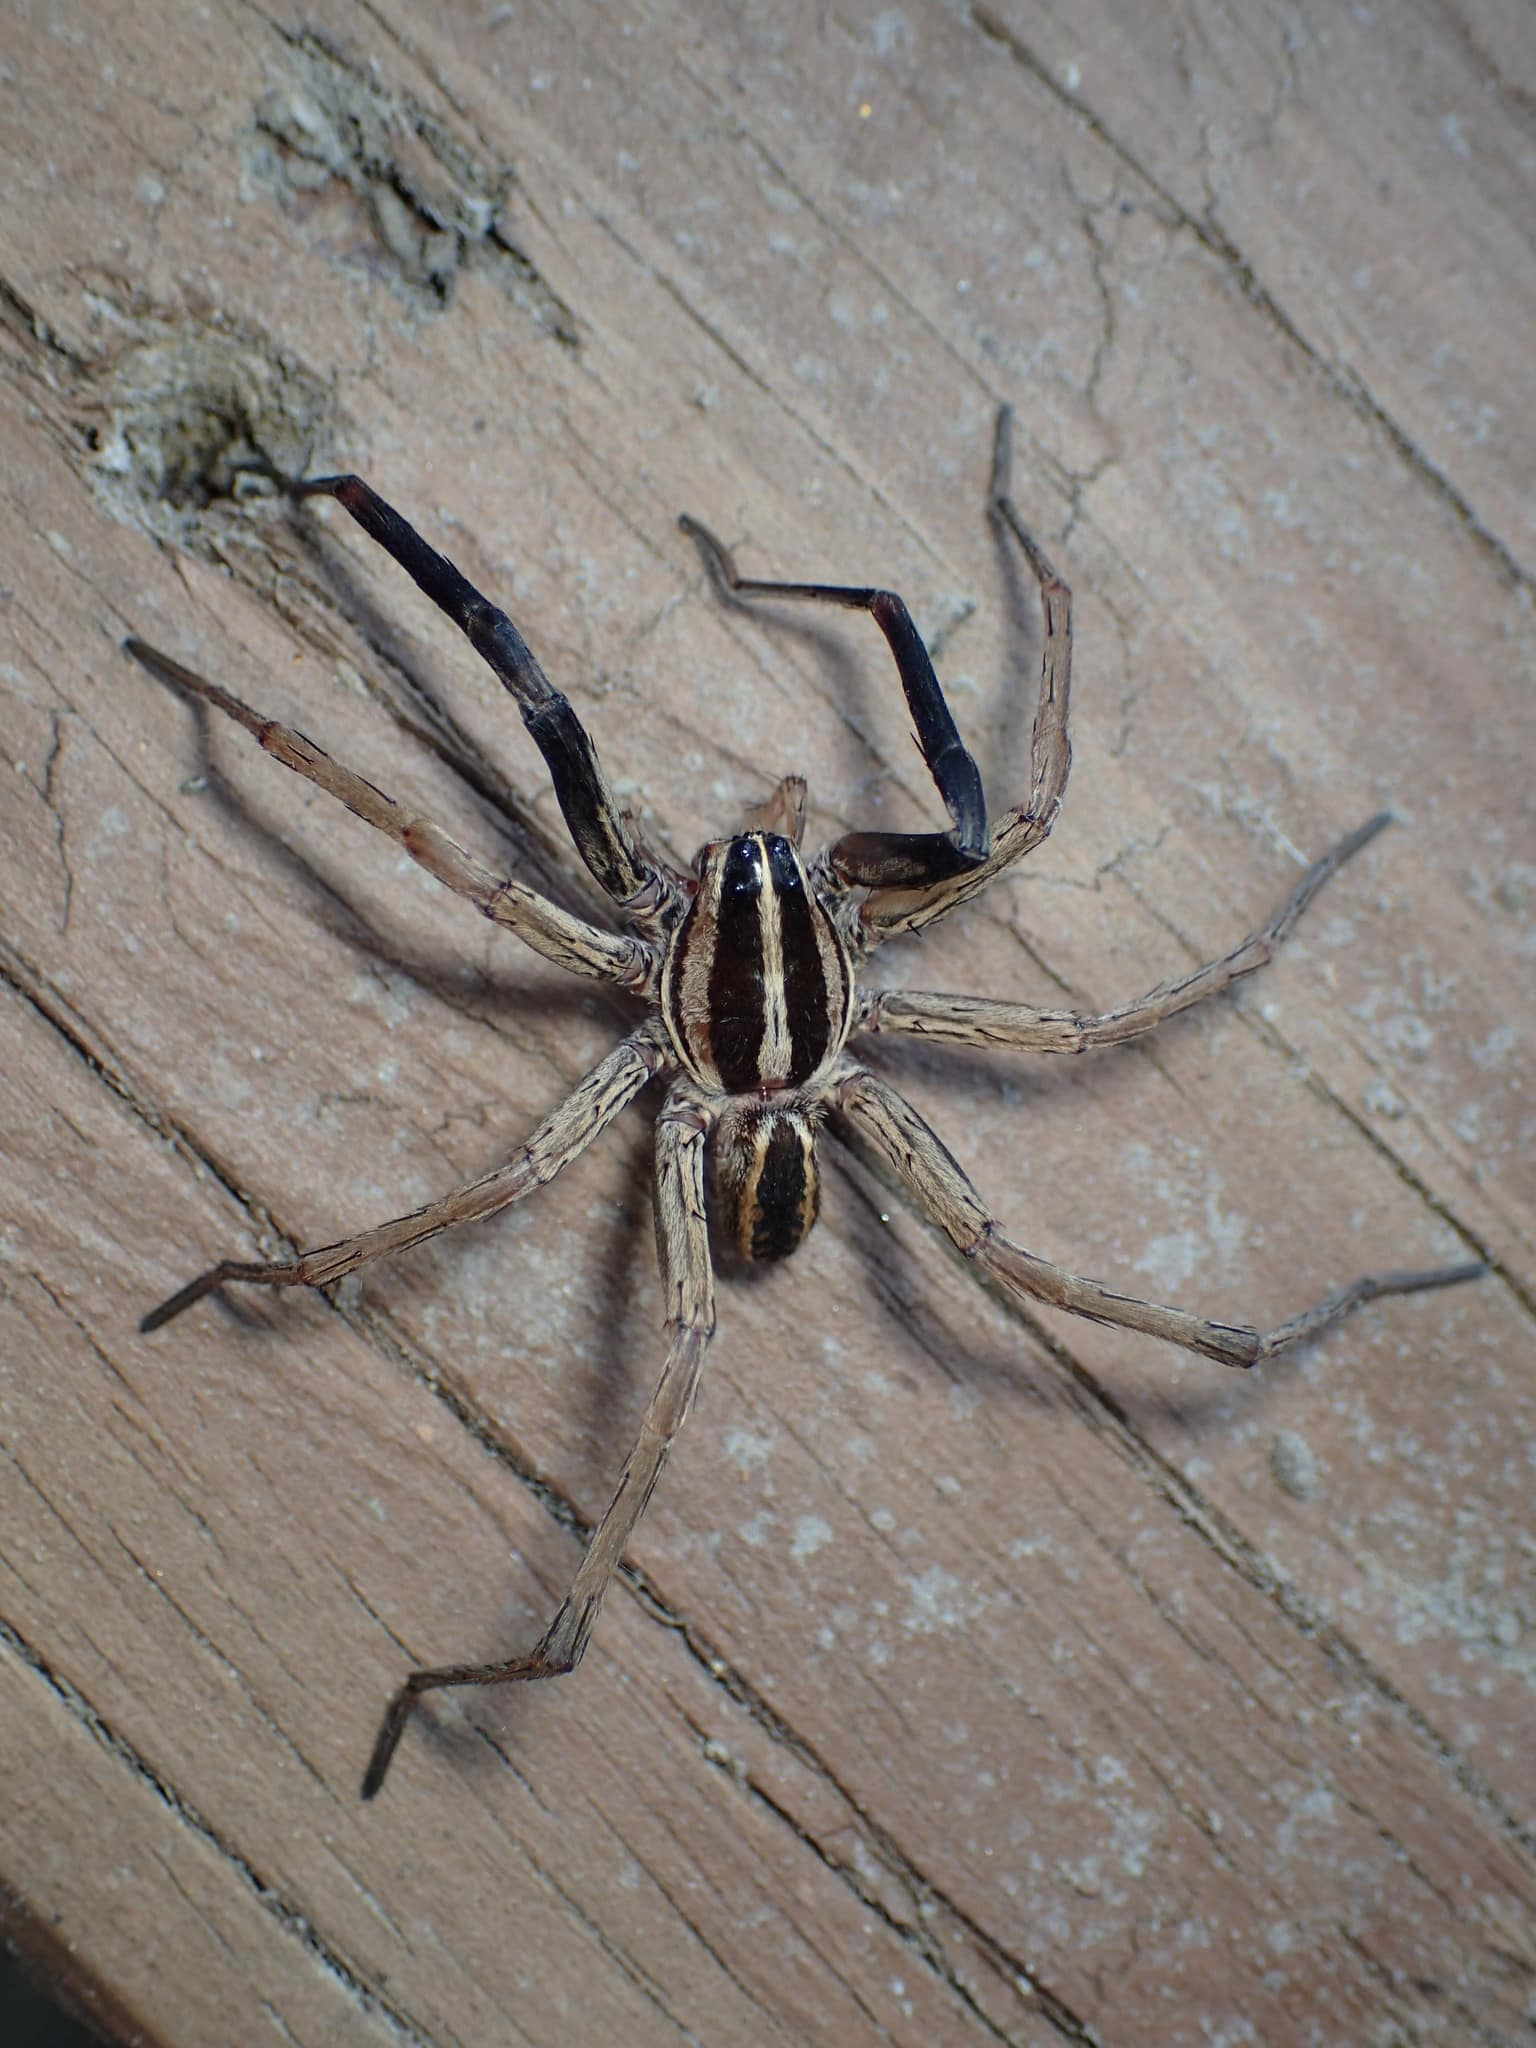 Picture of Rabidosa rabida (Rabid Wolf Spider) - Male - Dorsal